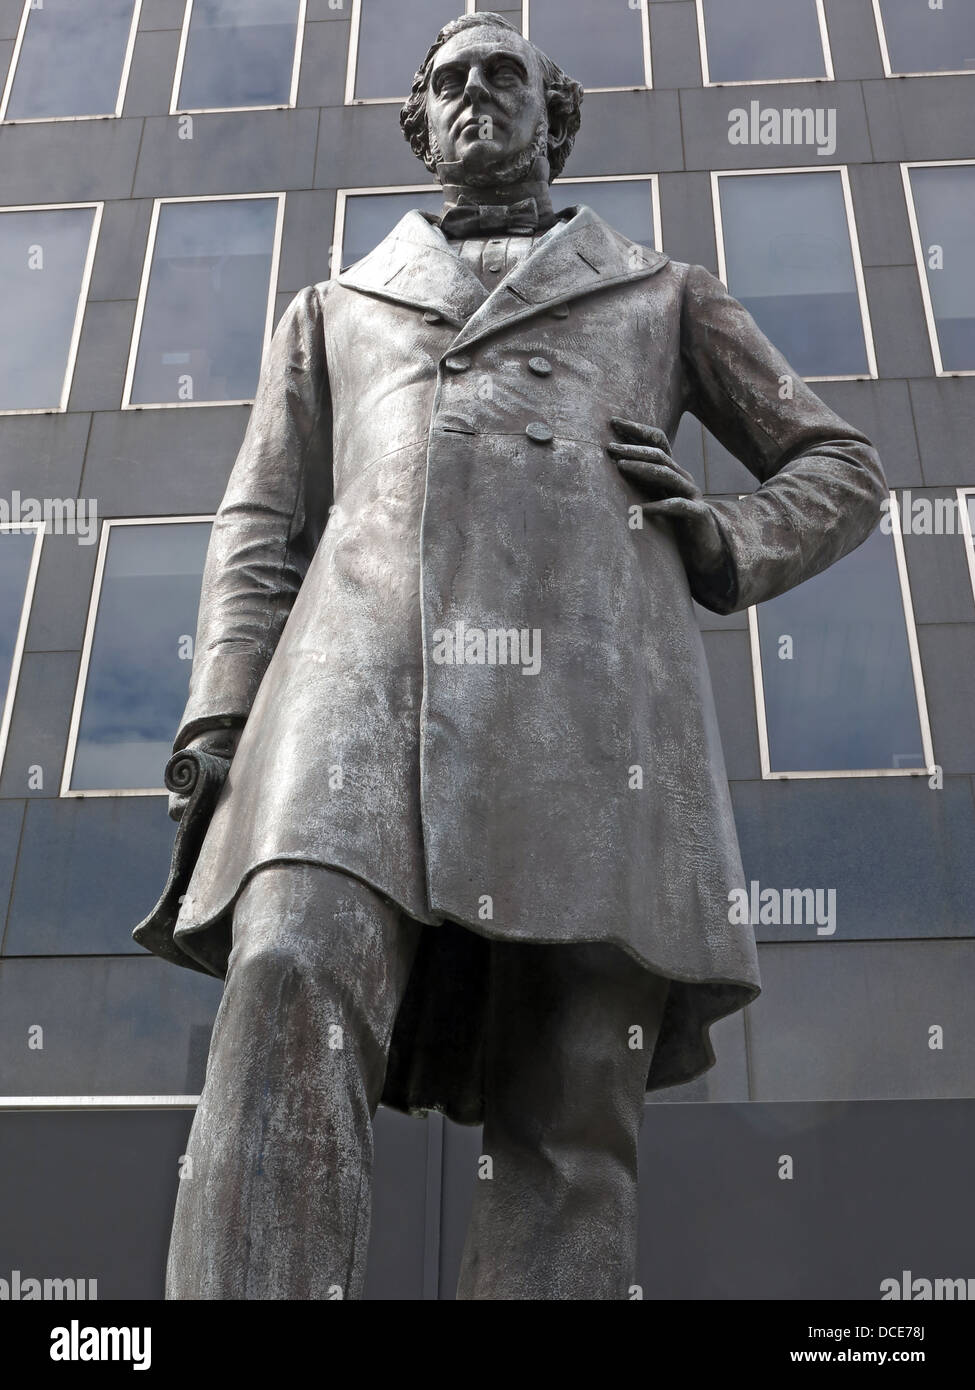 Robert Stephenson statue outside Euston Station London, England - Stock Image